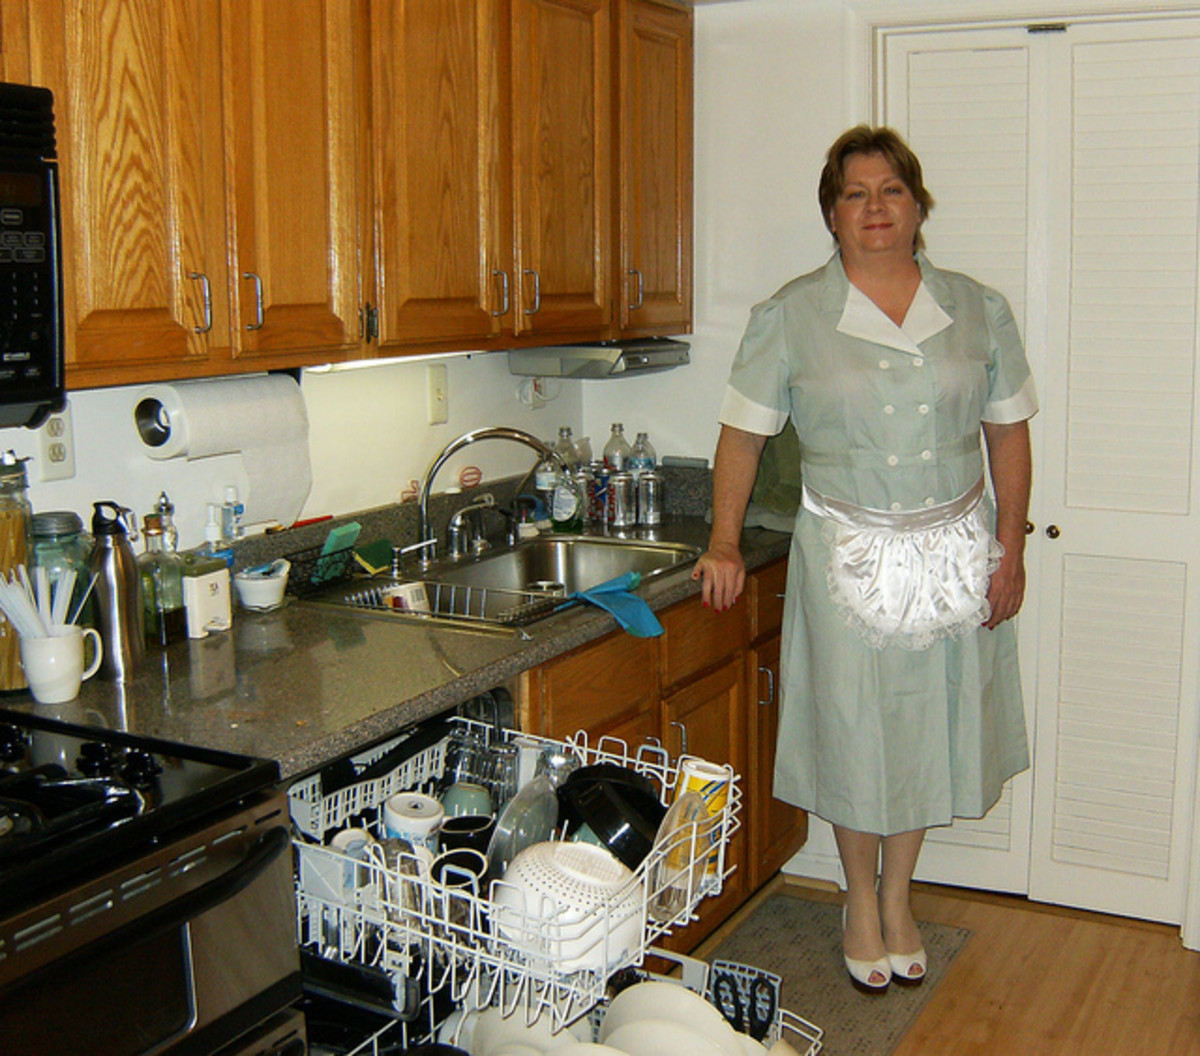 Hiring a Maid: Maid Service or Independent?